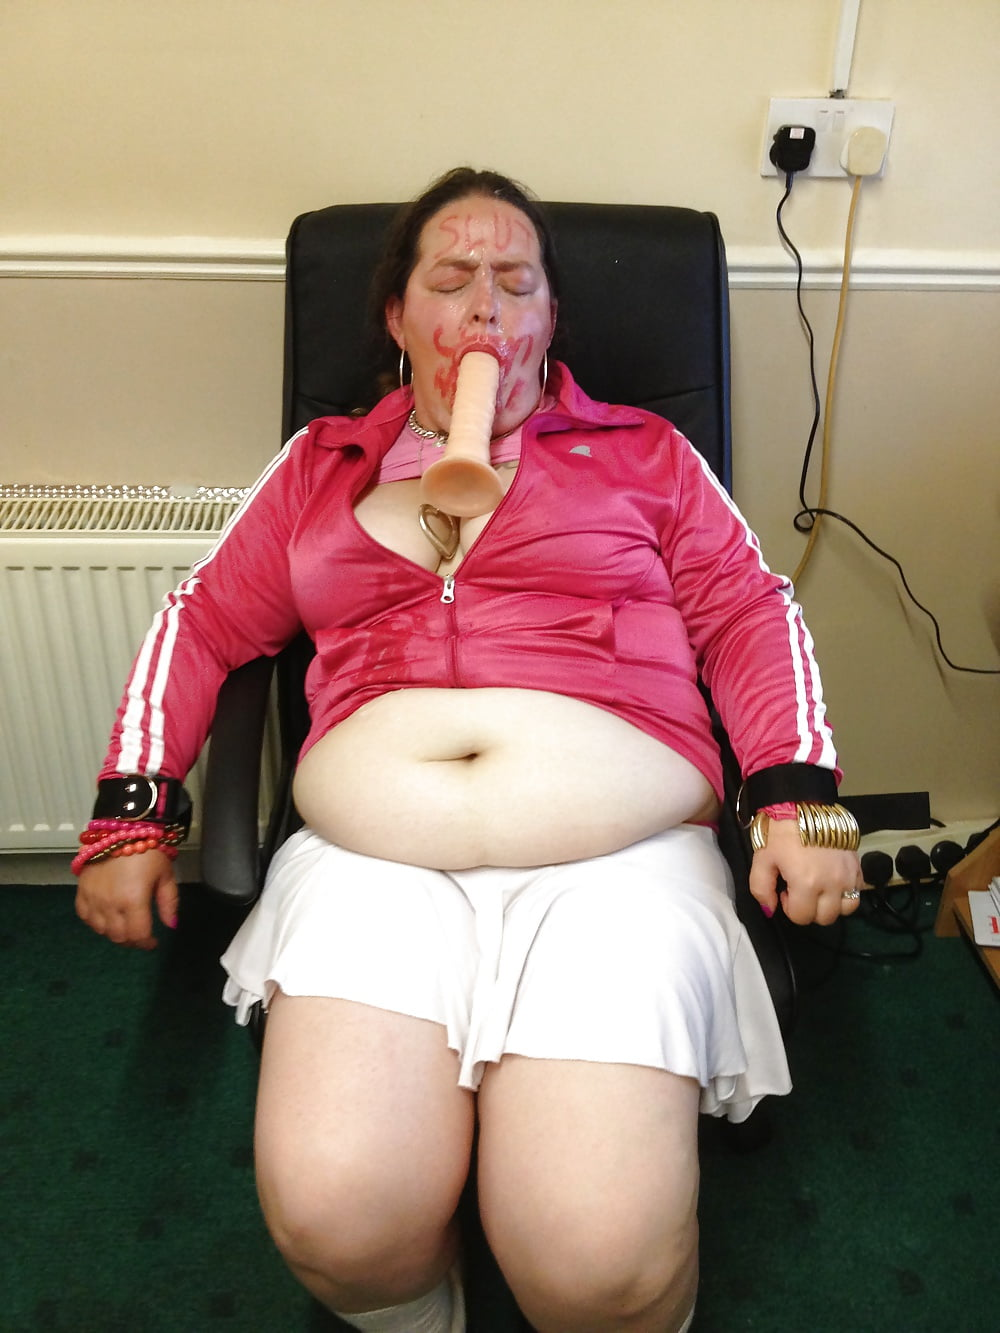 Fat Chav Slut Degraded And Humiliated - 27 Pics - Xhamstercom-2863